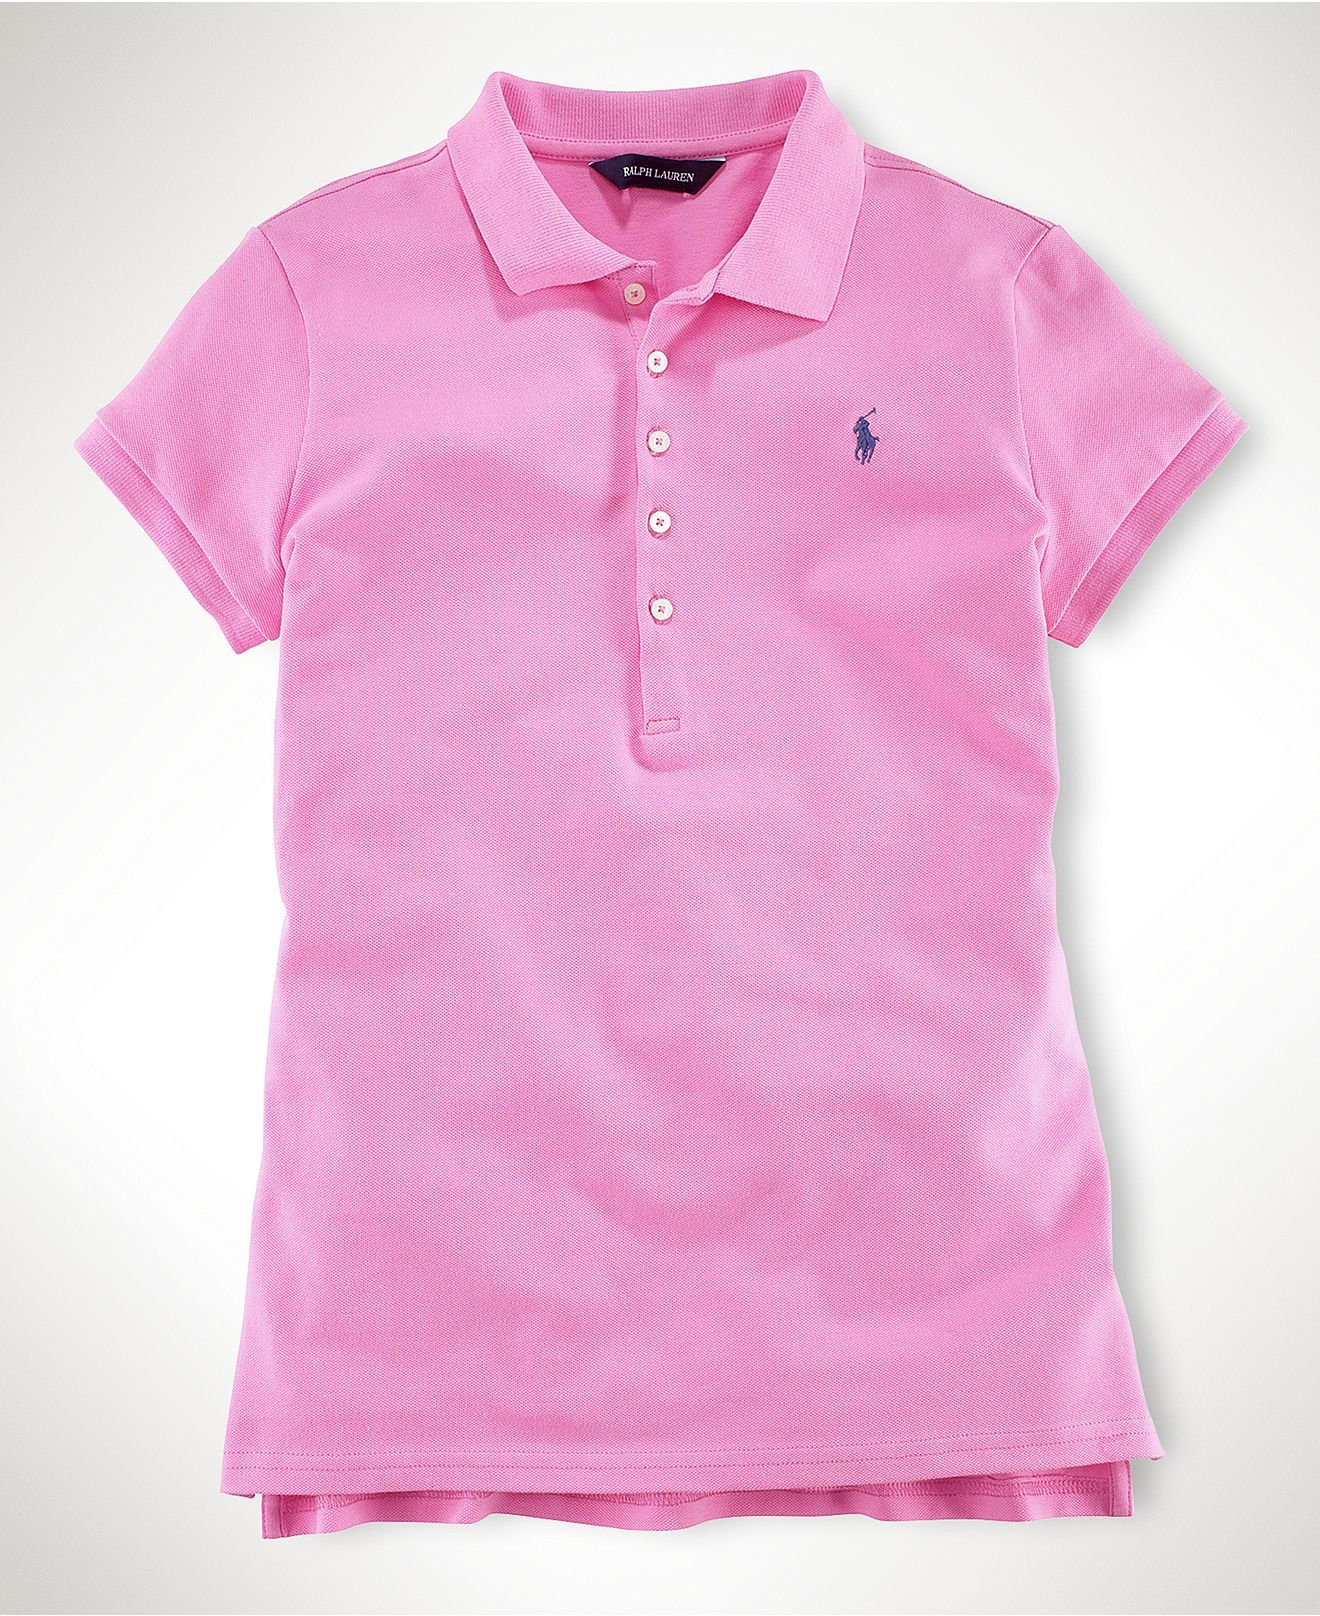 Ralph lauren kids shirt little girls mesh polo shirt for Personalized polo shirts for toddlers